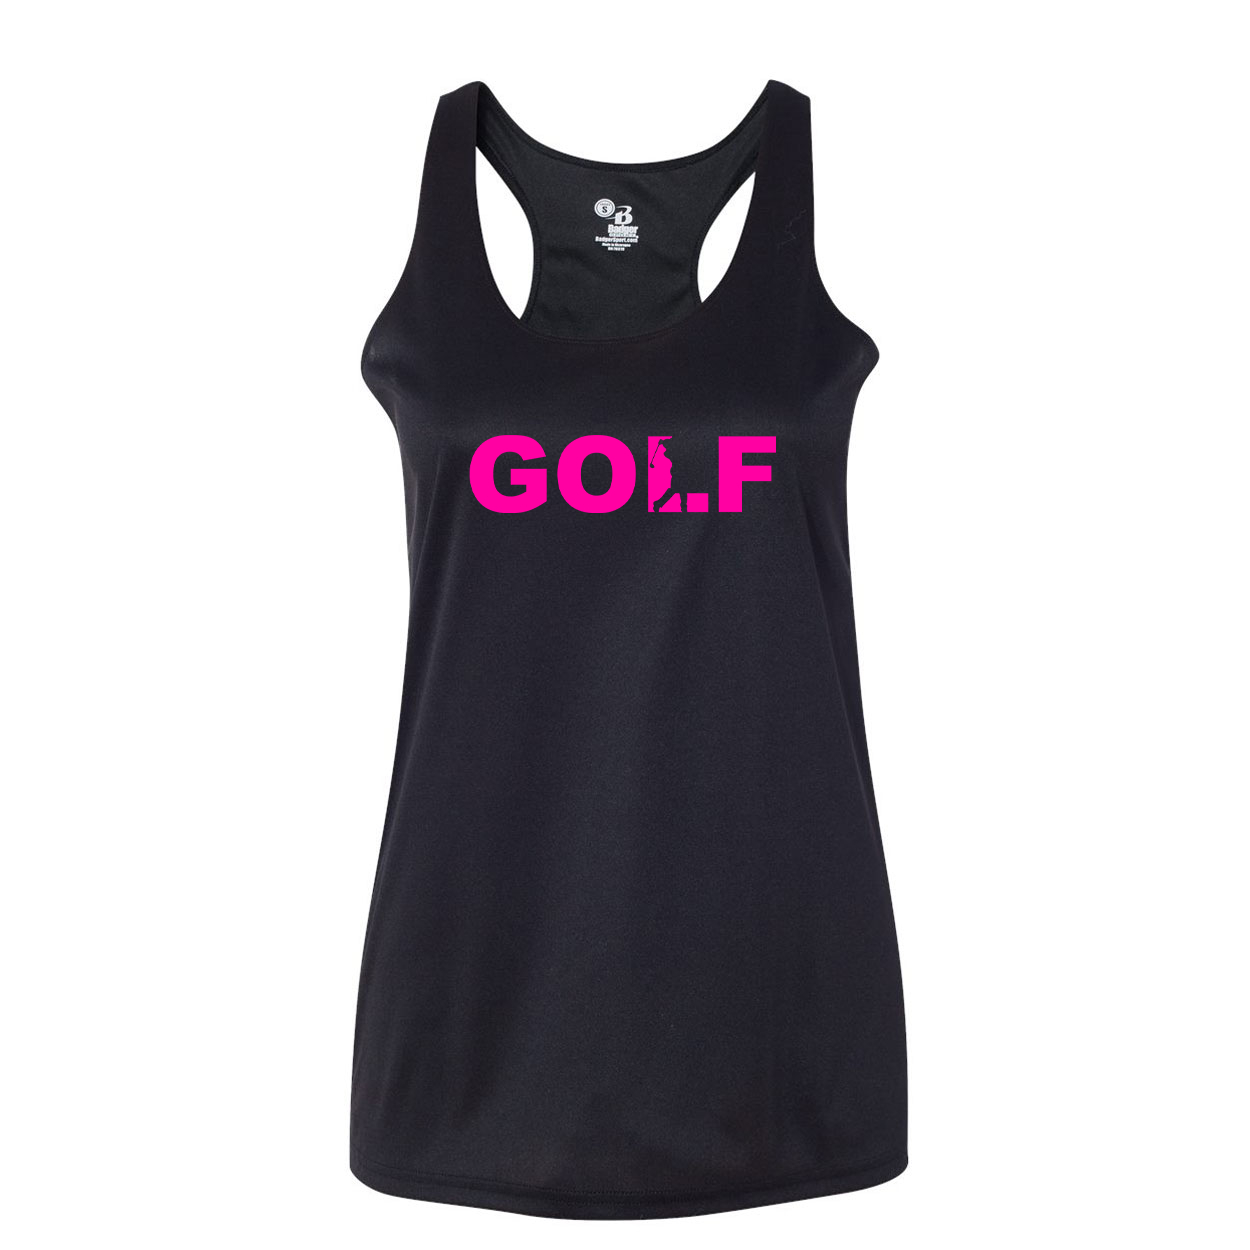 Golf Swing Logo Classic Womens Performance Racerback Tank Top Black (Pink Logo)